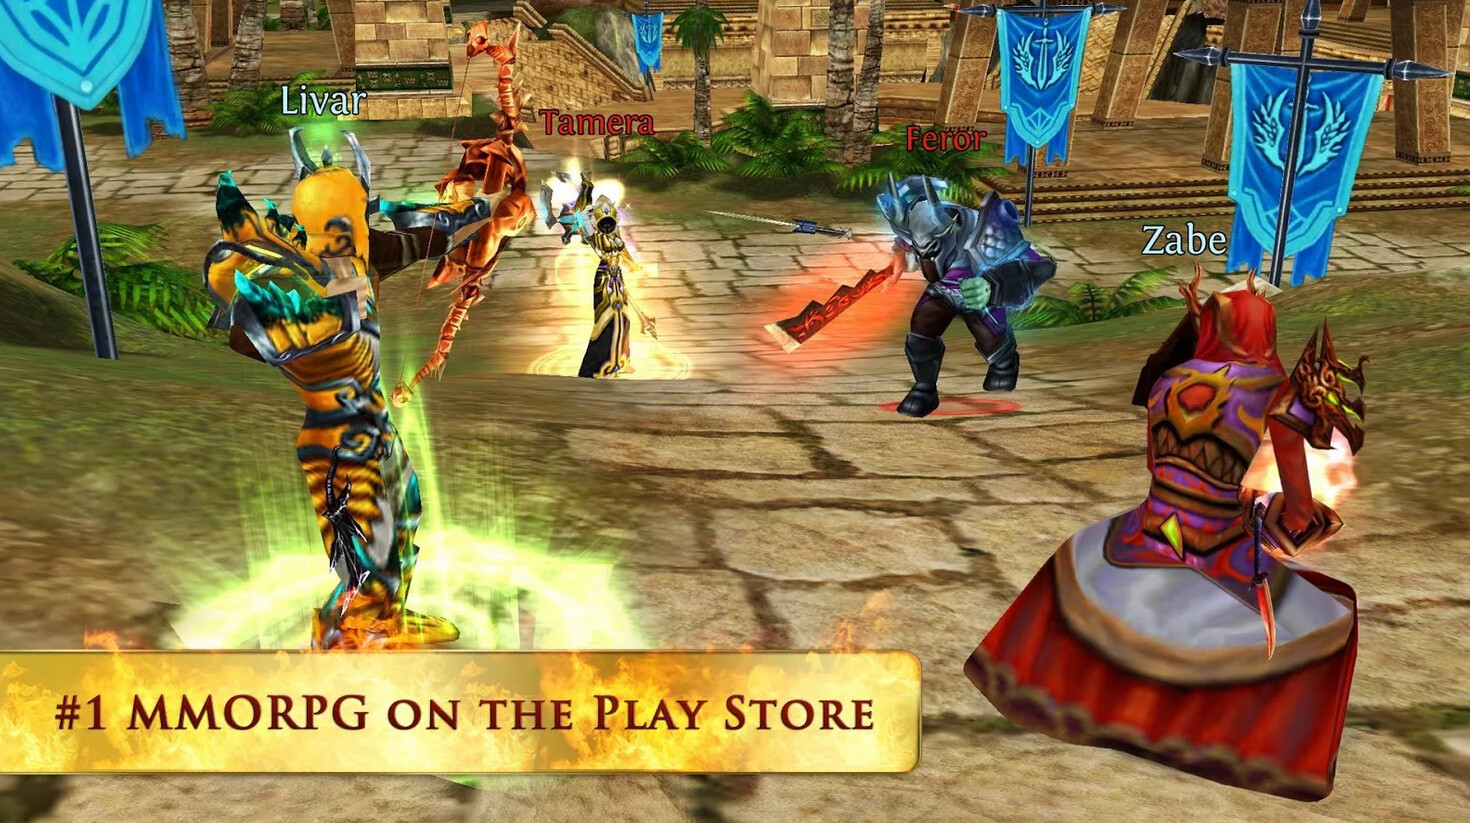 Phone Mmorpg For Android Phones the order chaos online mmorpg breaks free from price tag chains on both ios and android